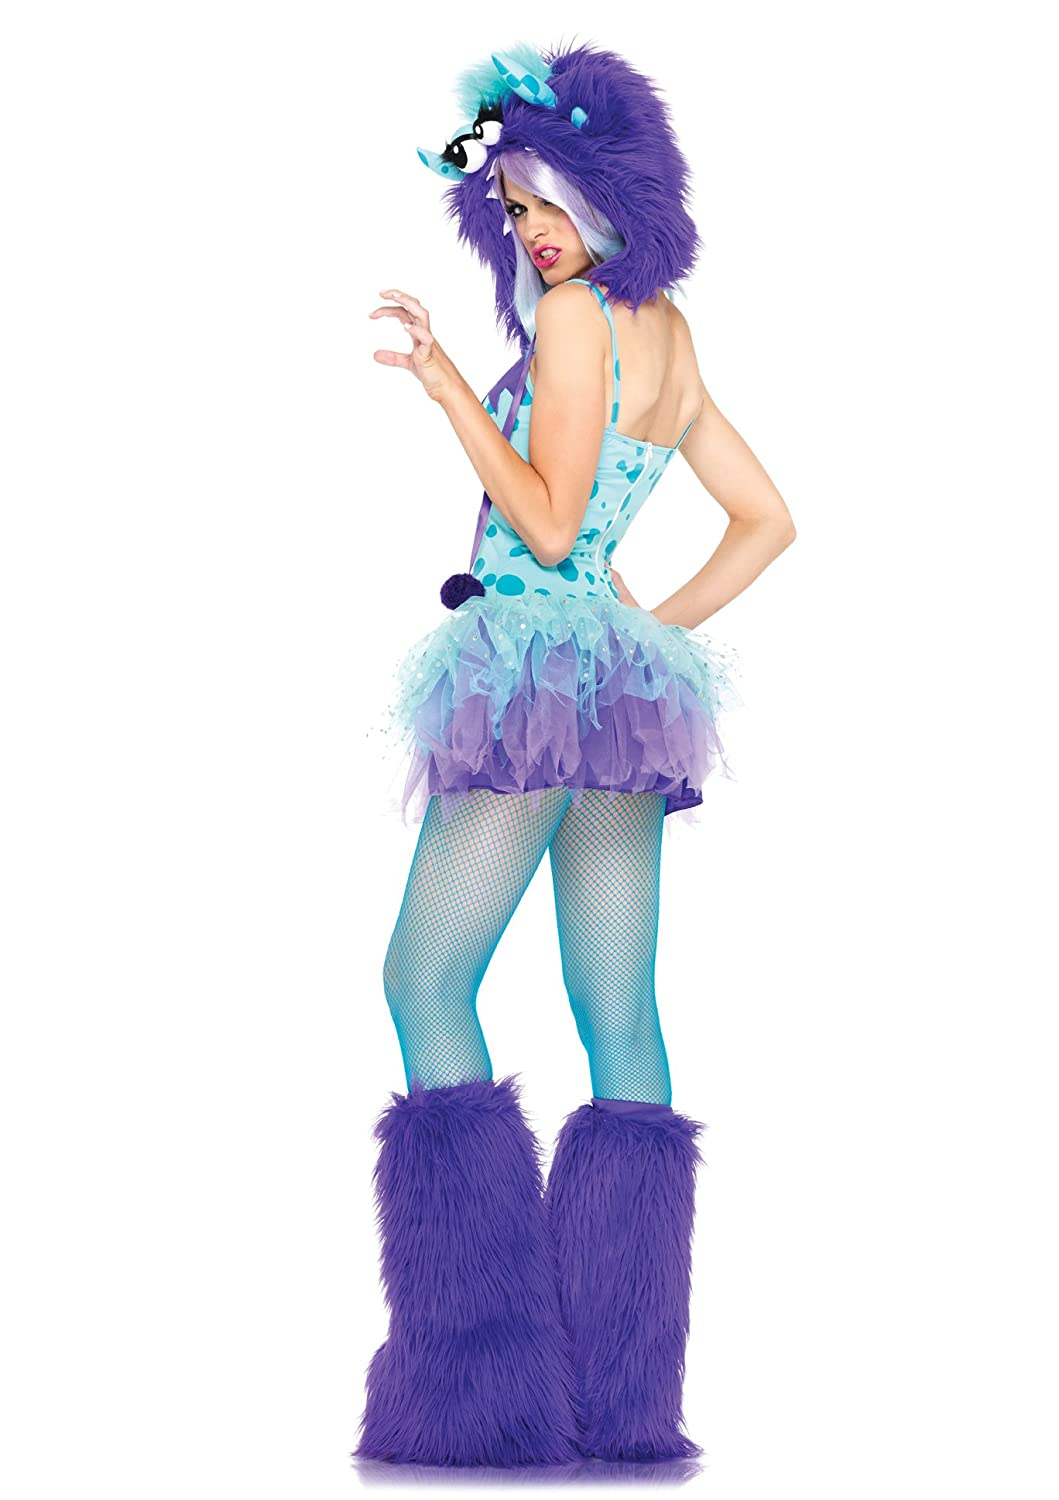 Amazon.com Leg Avenue Womenu0027s 2 Piece Polka Dotty Monster Costume Aqua/Purple X-Small Clothing  sc 1 st  Amazon.com & Amazon.com: Leg Avenue Womenu0027s 2 Piece Polka Dotty Monster Costume ...